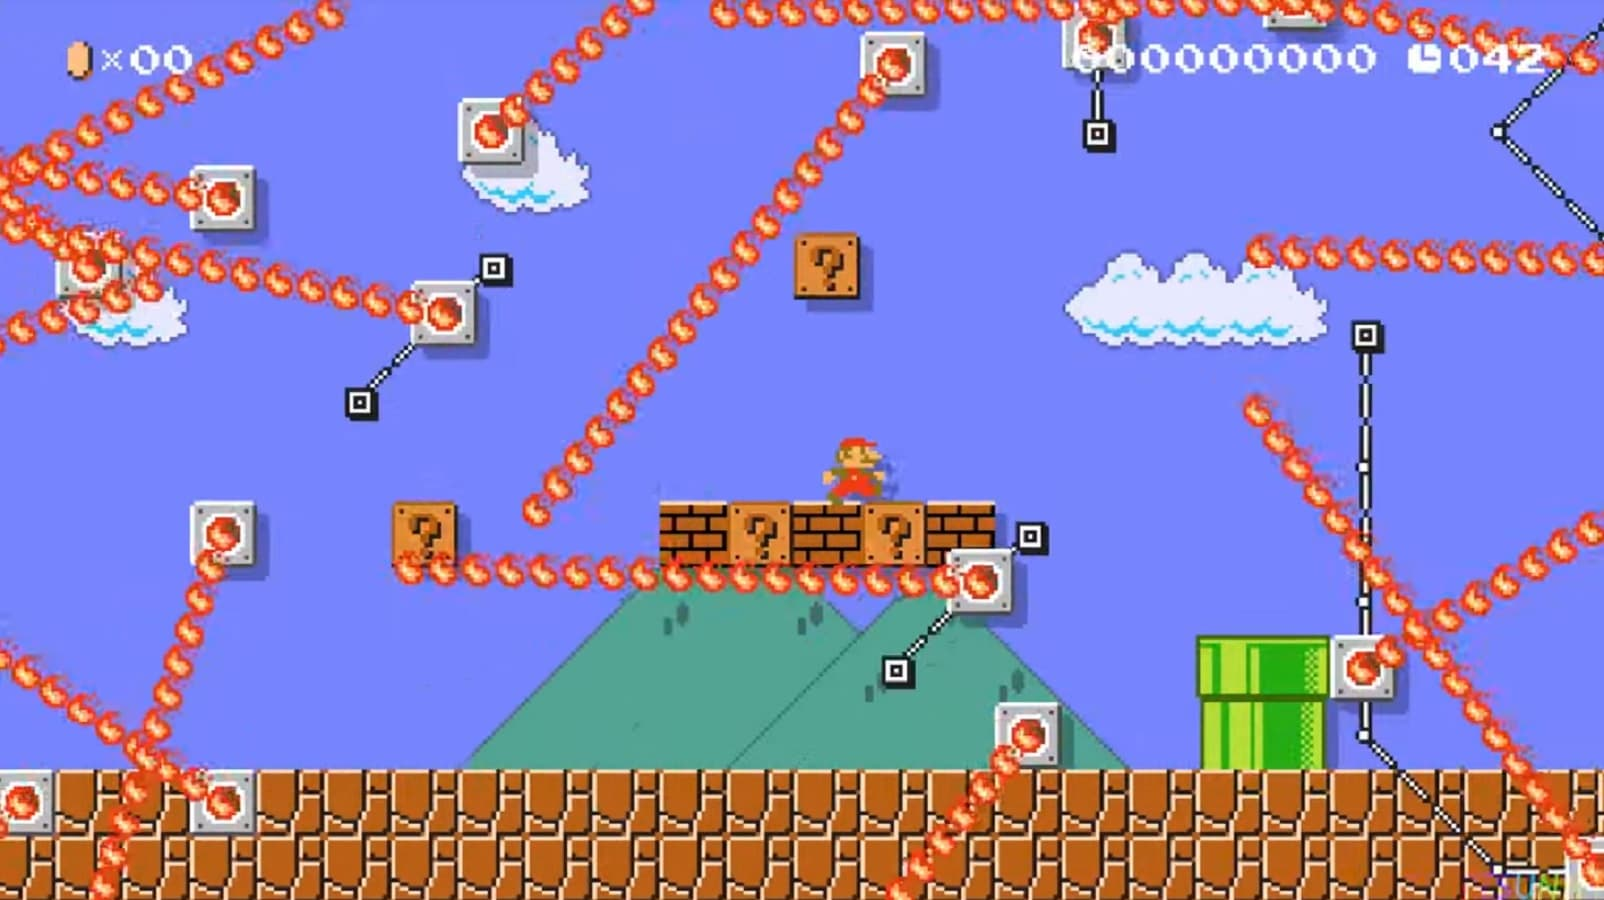 This Super Mario Maker 2 level takes World 1-1 and adds fire